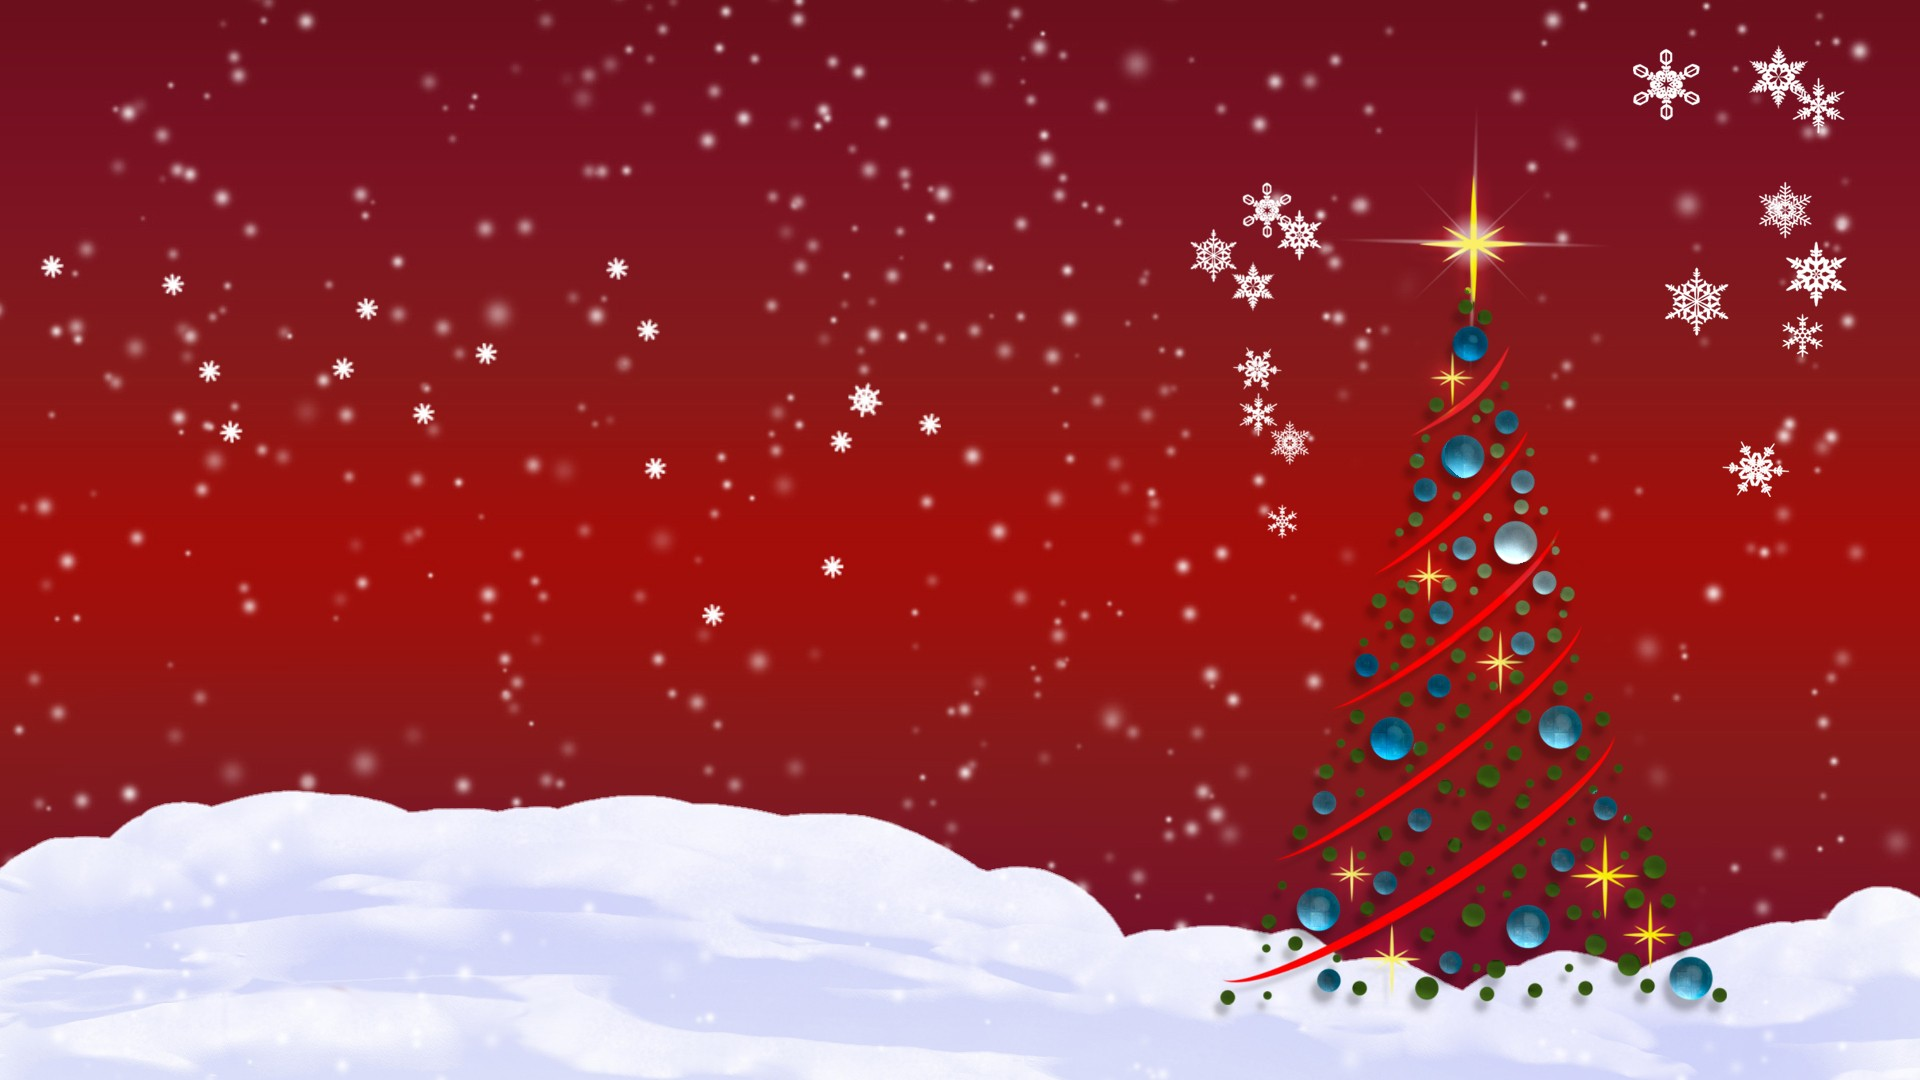 Free Christmas Wallpapers And Screensavers For Mac